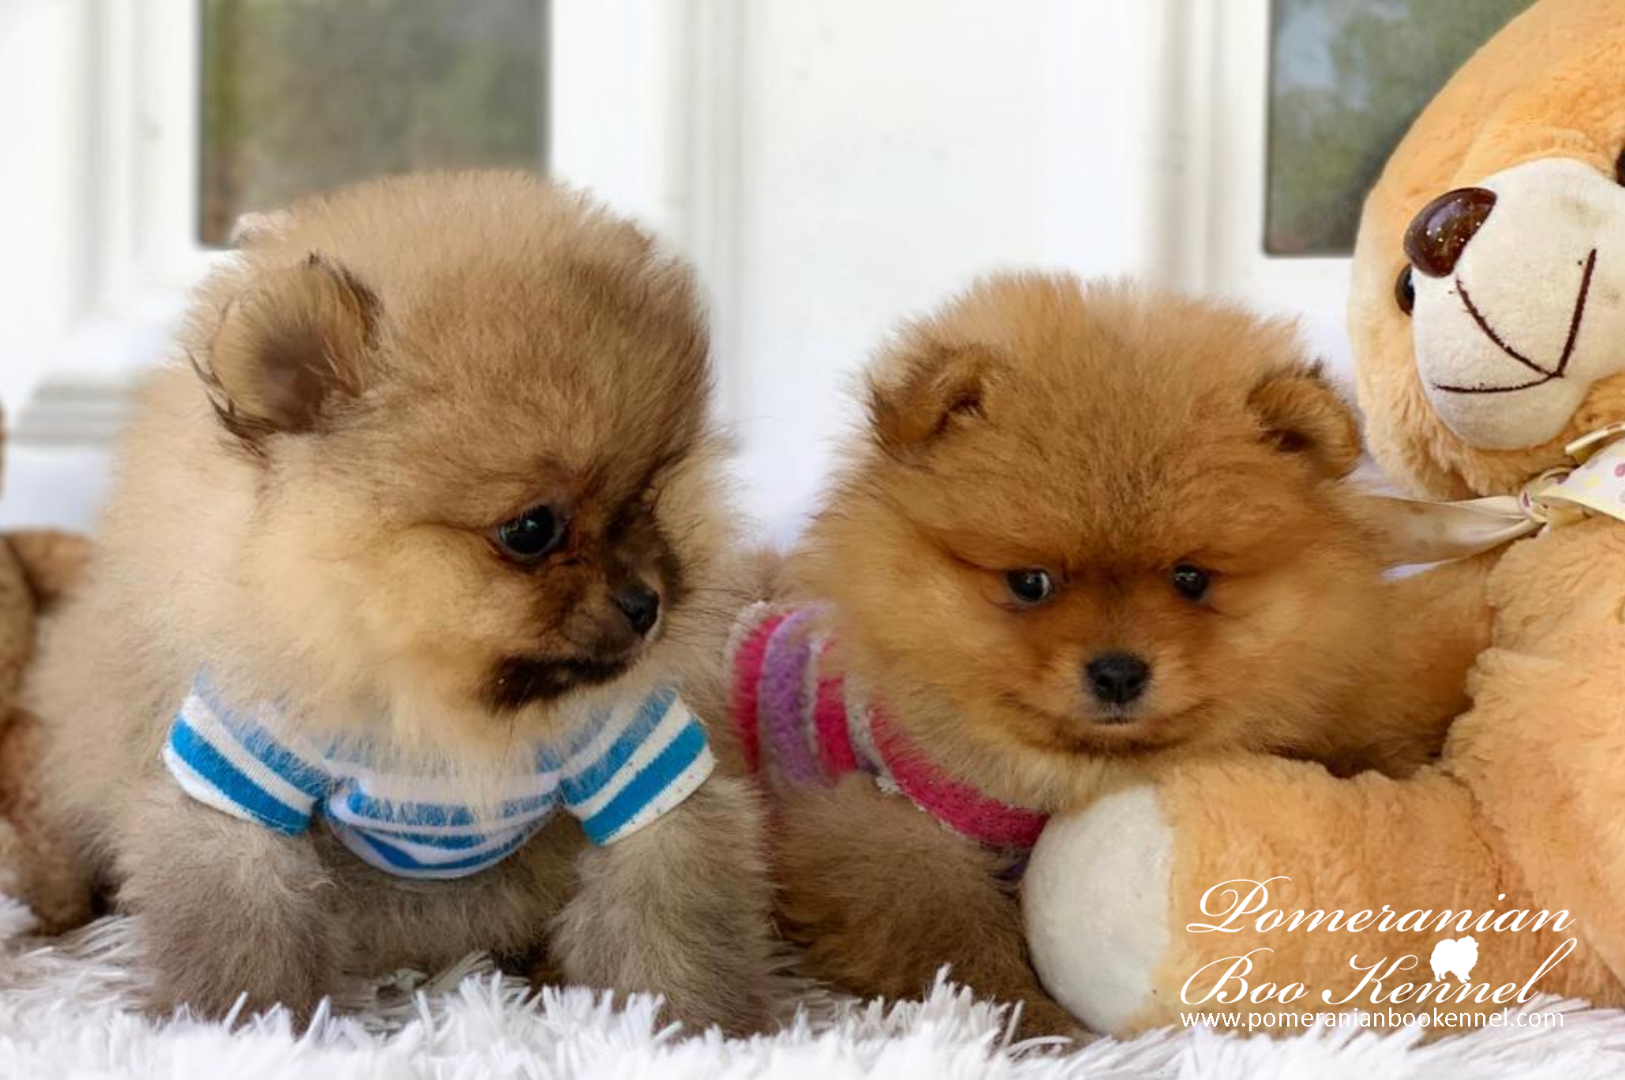 new pomeranian puppies in light orange and gray color